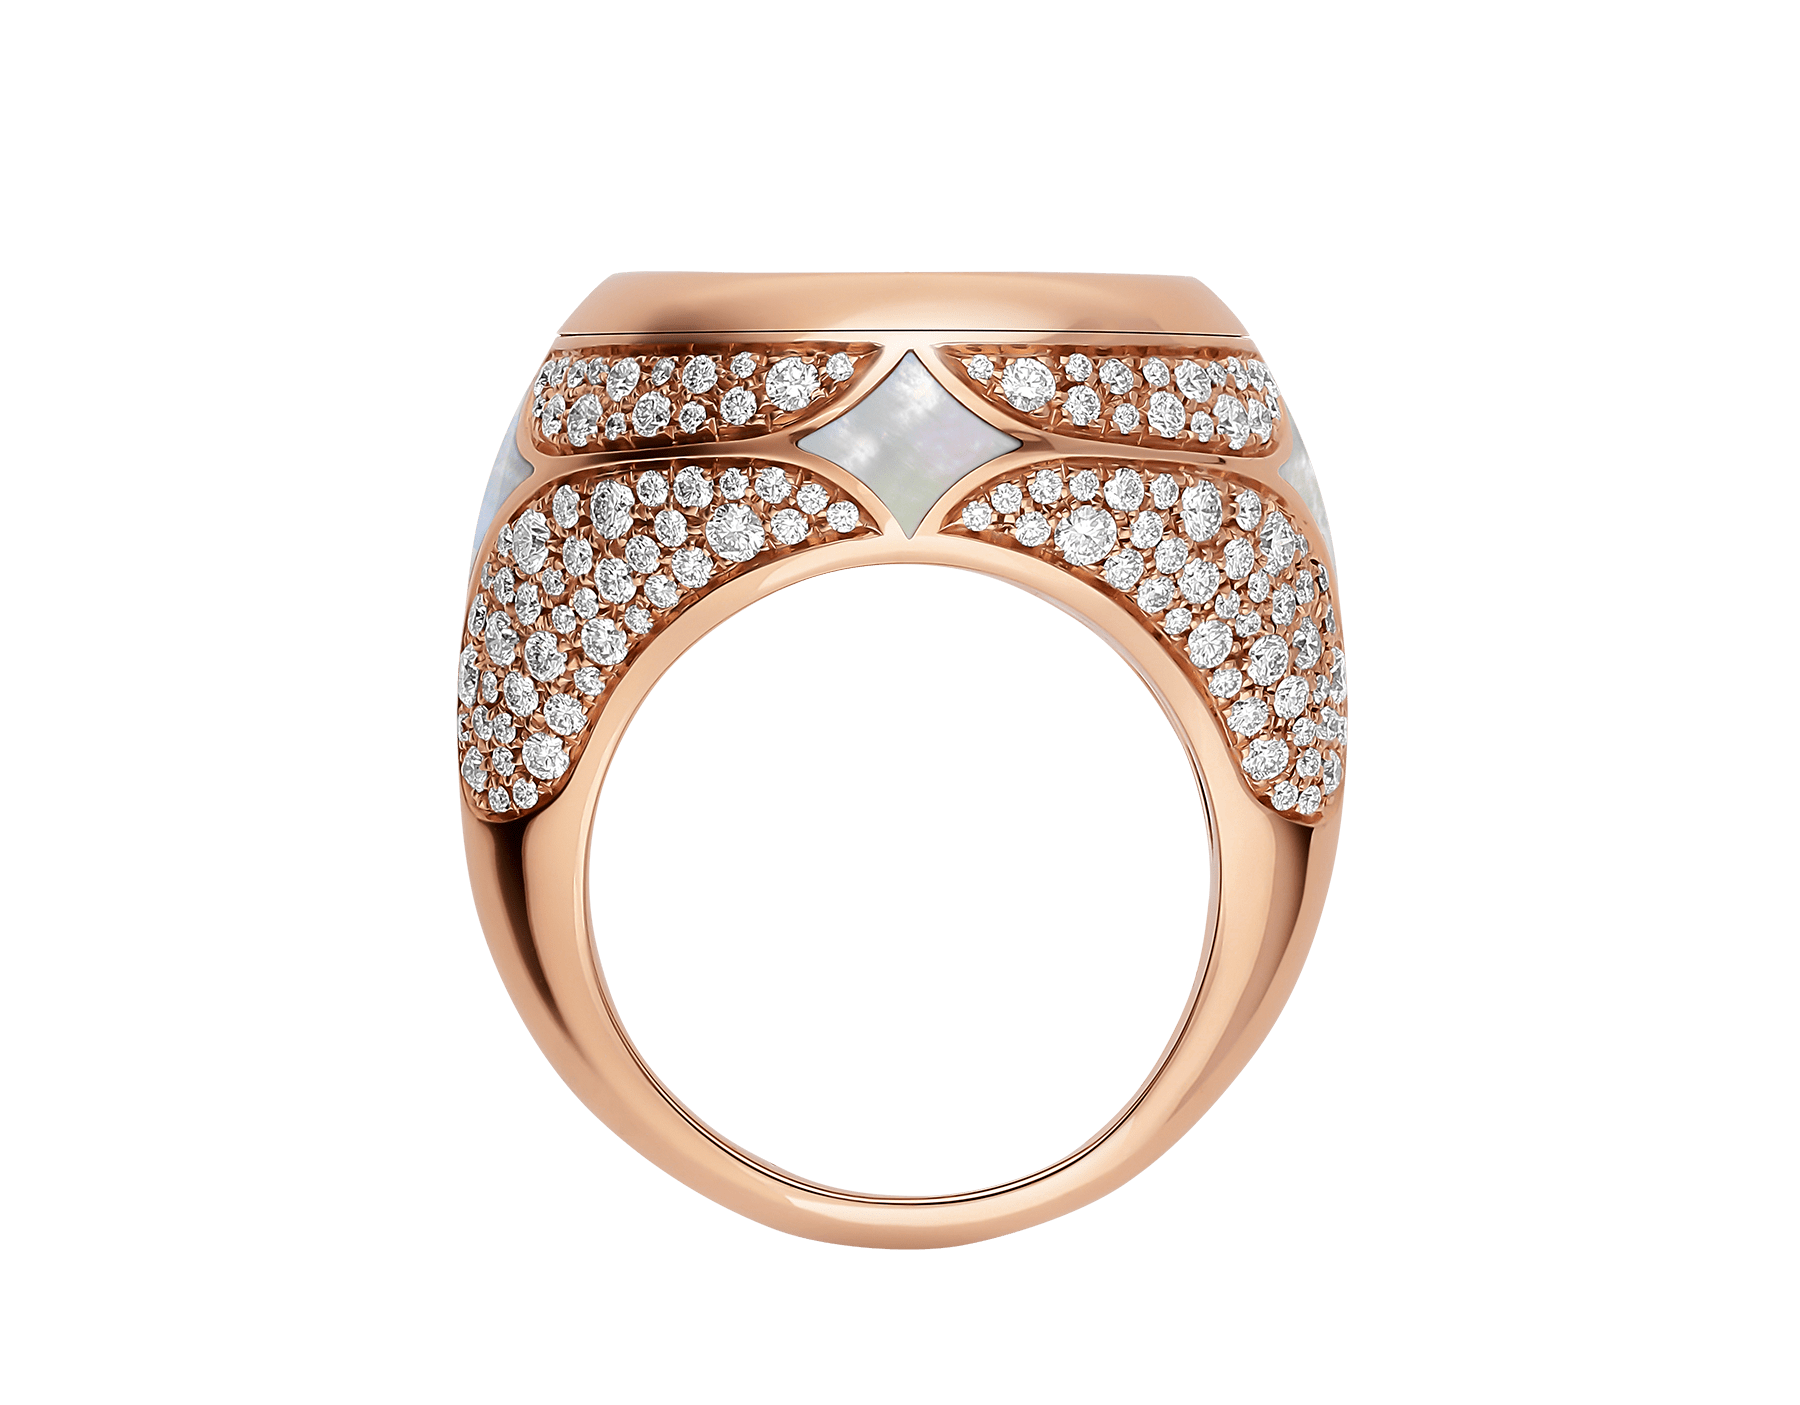 Monete 18 kt rose gold ring set with an ancient coin, mother-of-pearl elements and pavé diamonds AN858424 image 2